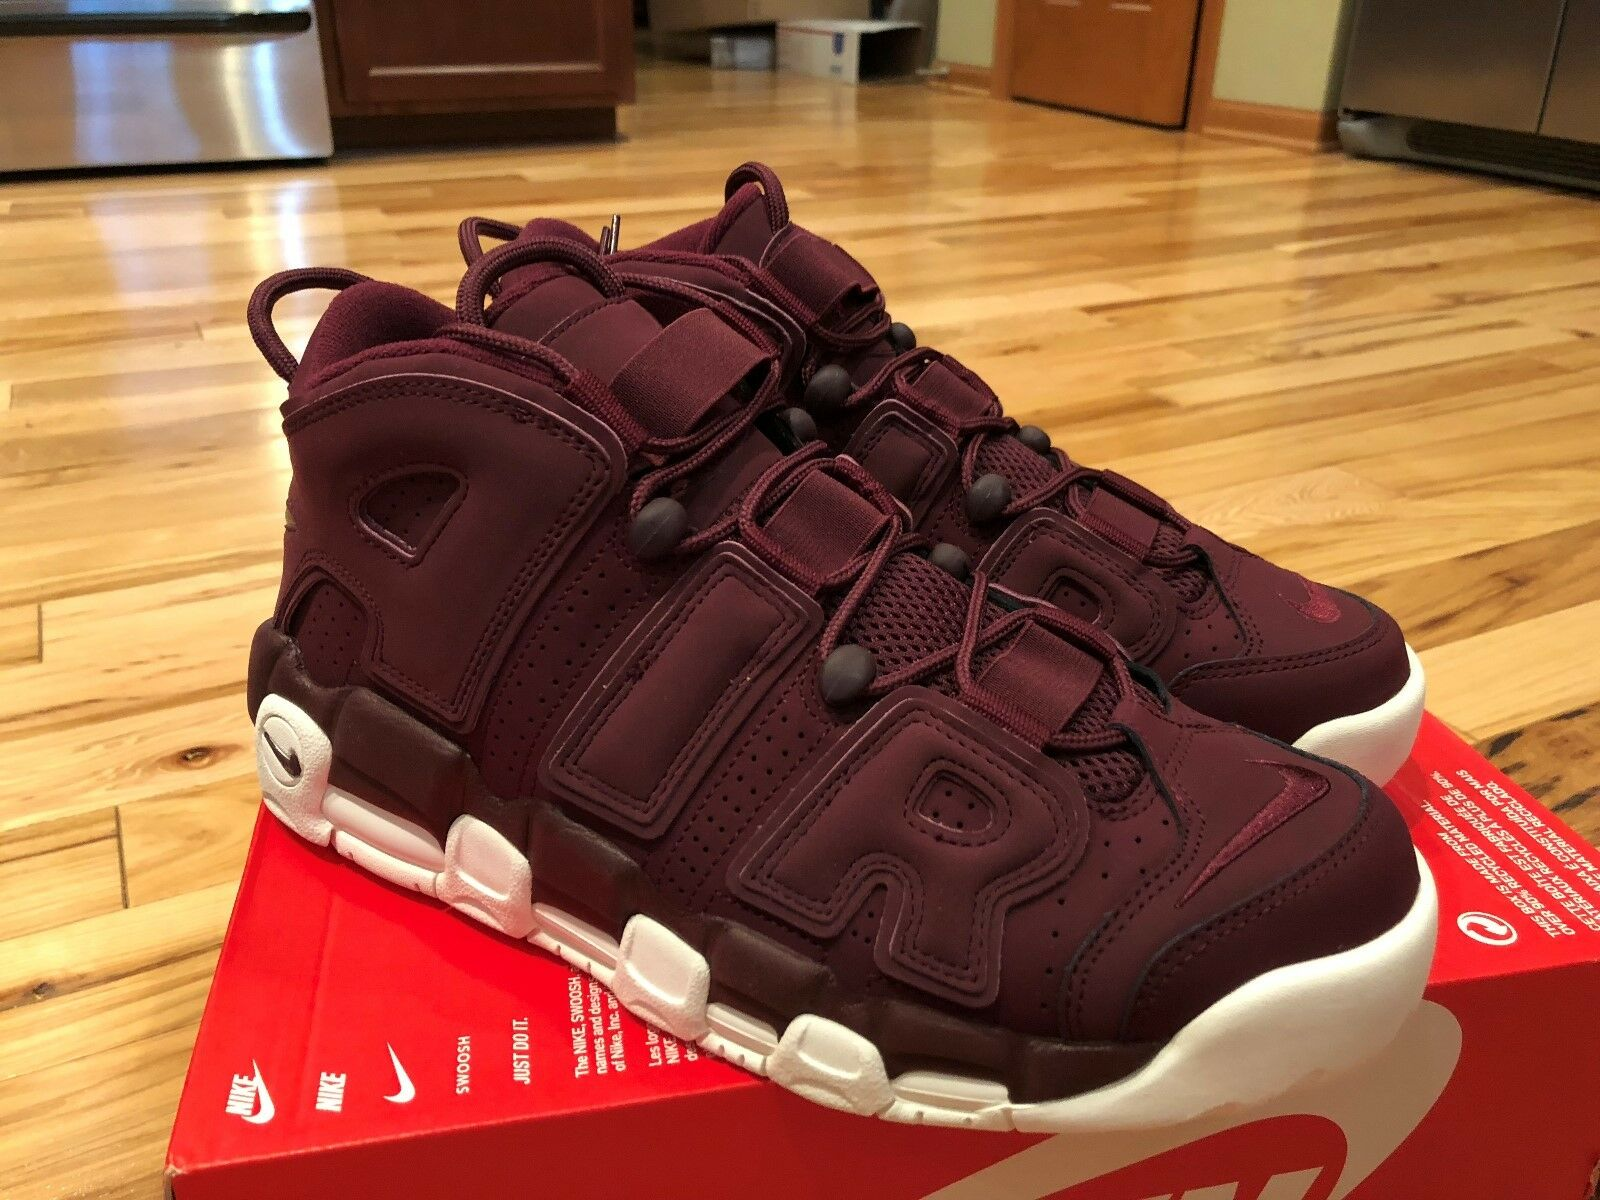 Nike Air More Uptempo 96 QS Night Maroon 921949 600 Men's Size 10